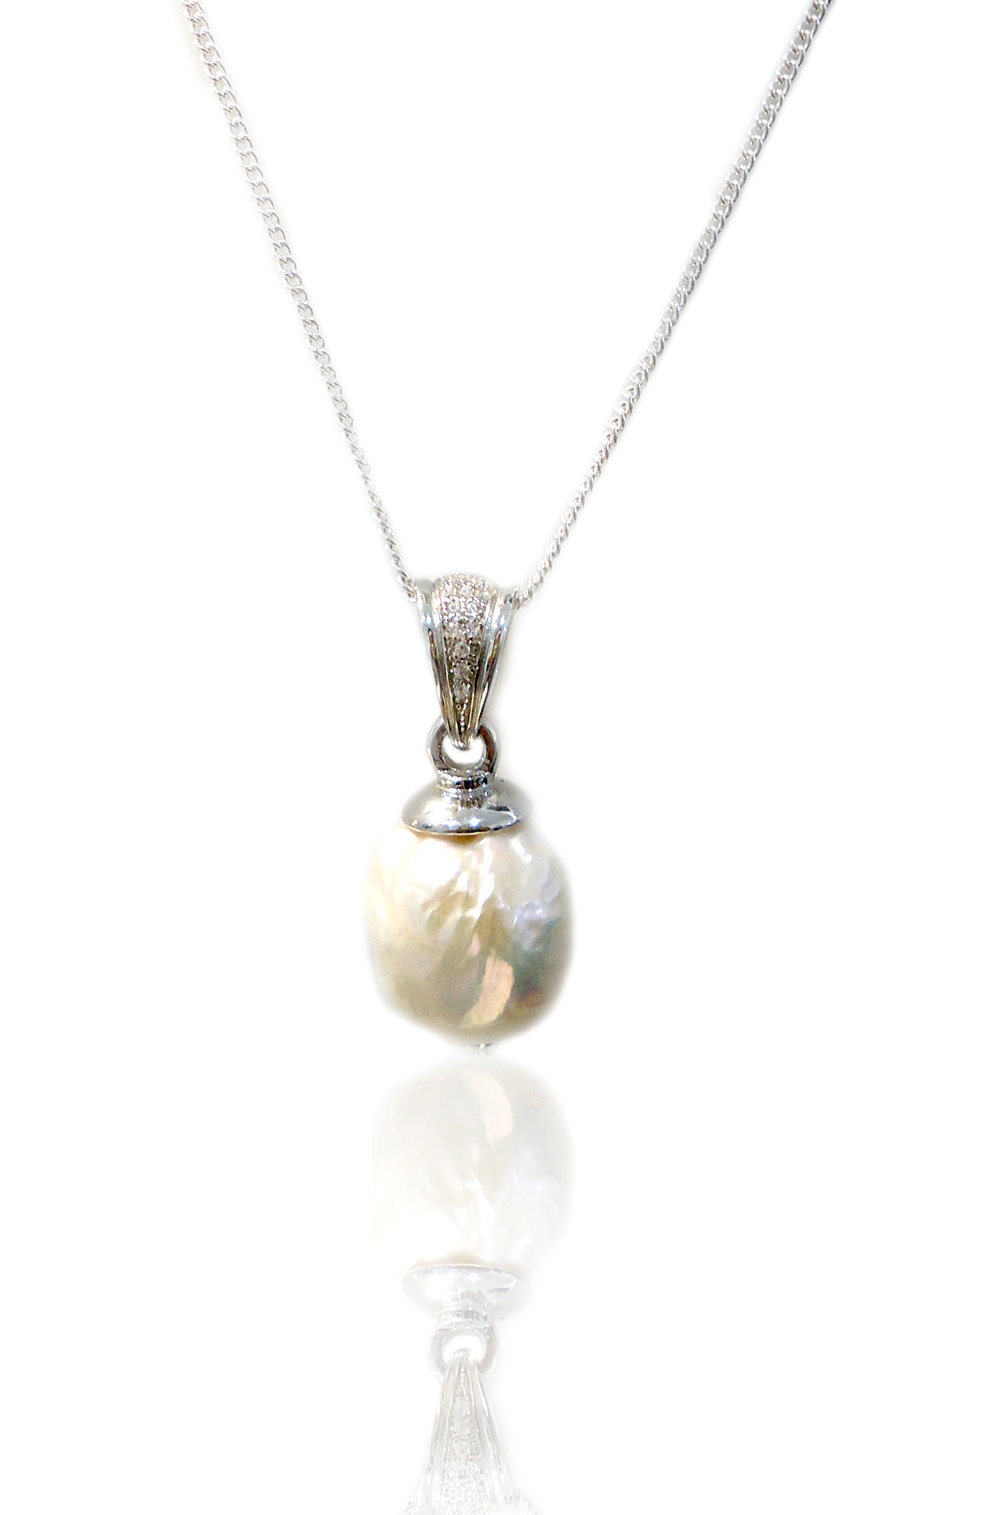 Elegant pearl & cubic zirconia necklace!